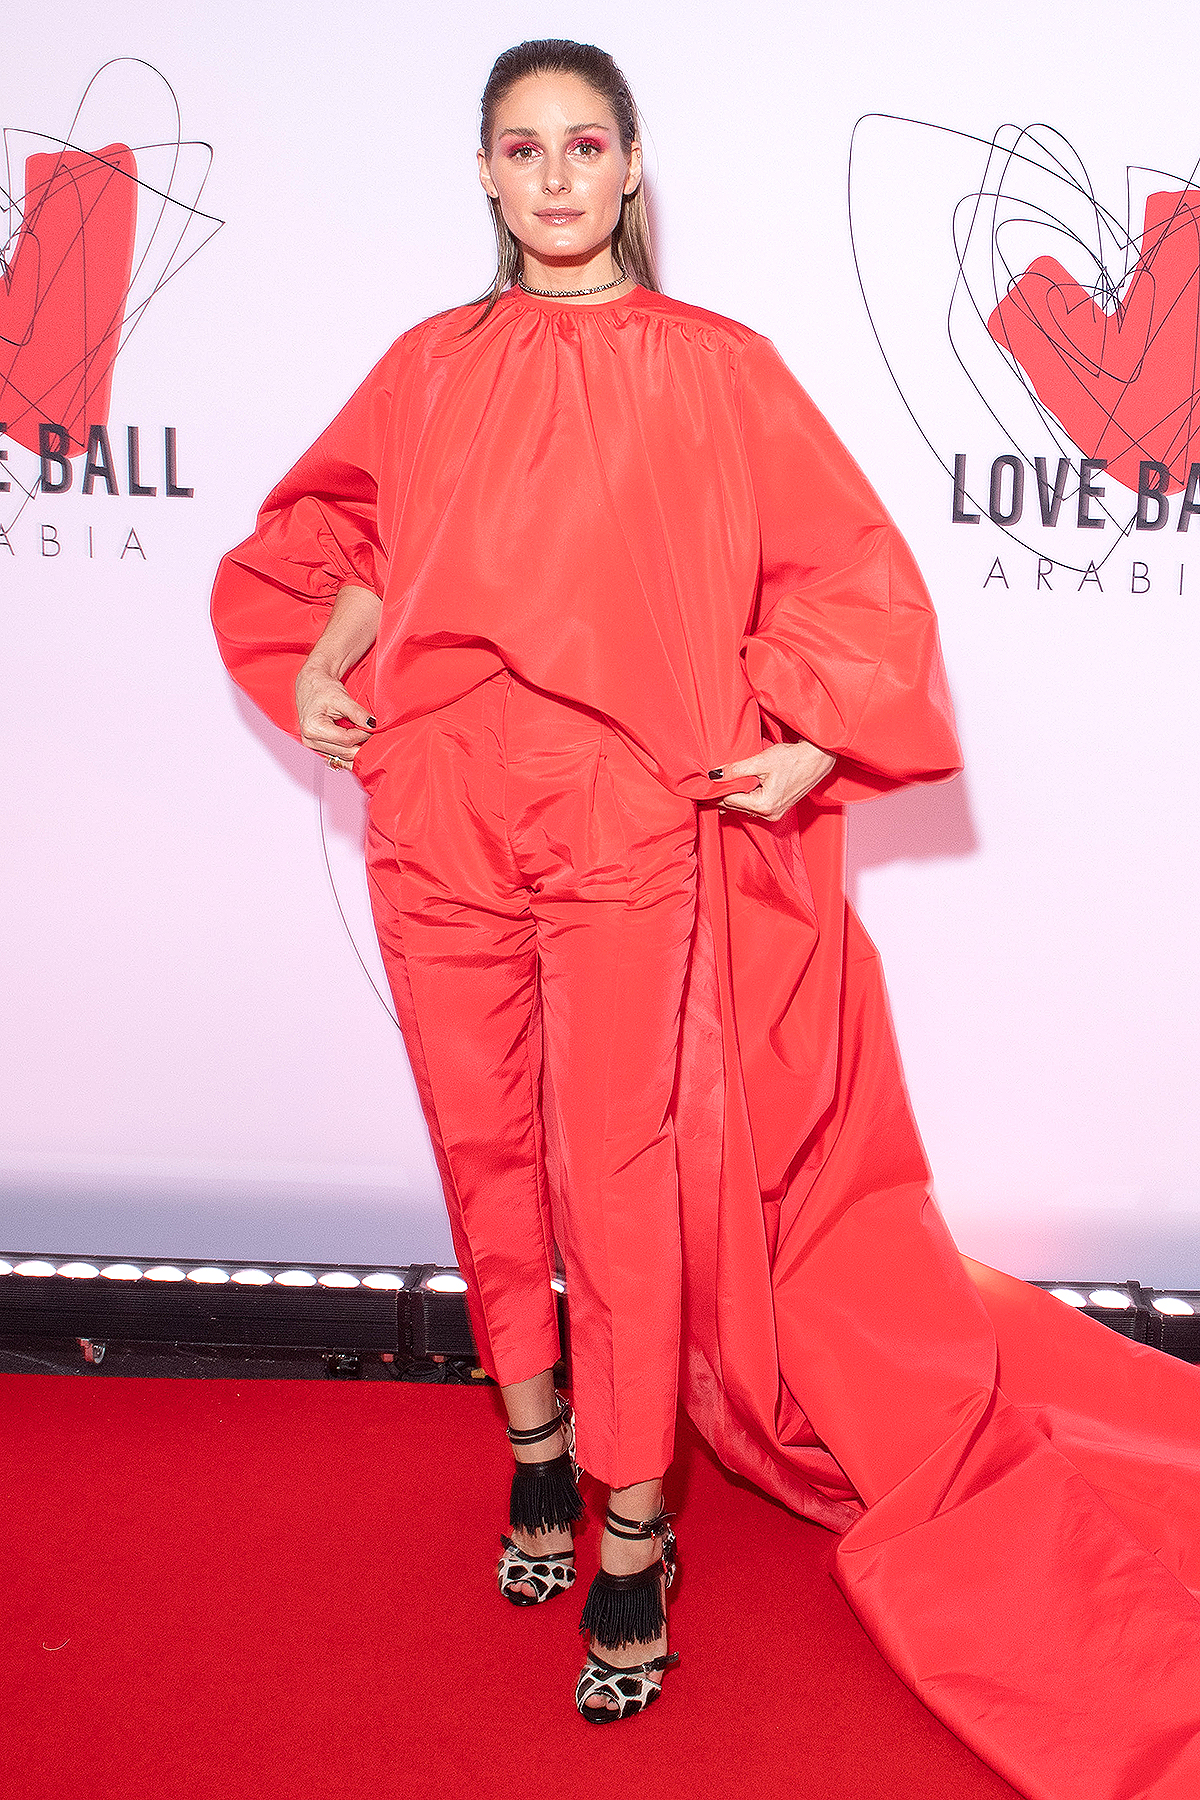 Love Ball Arabia In Aid Of The Naked Heart Foundation And Al Shafallah